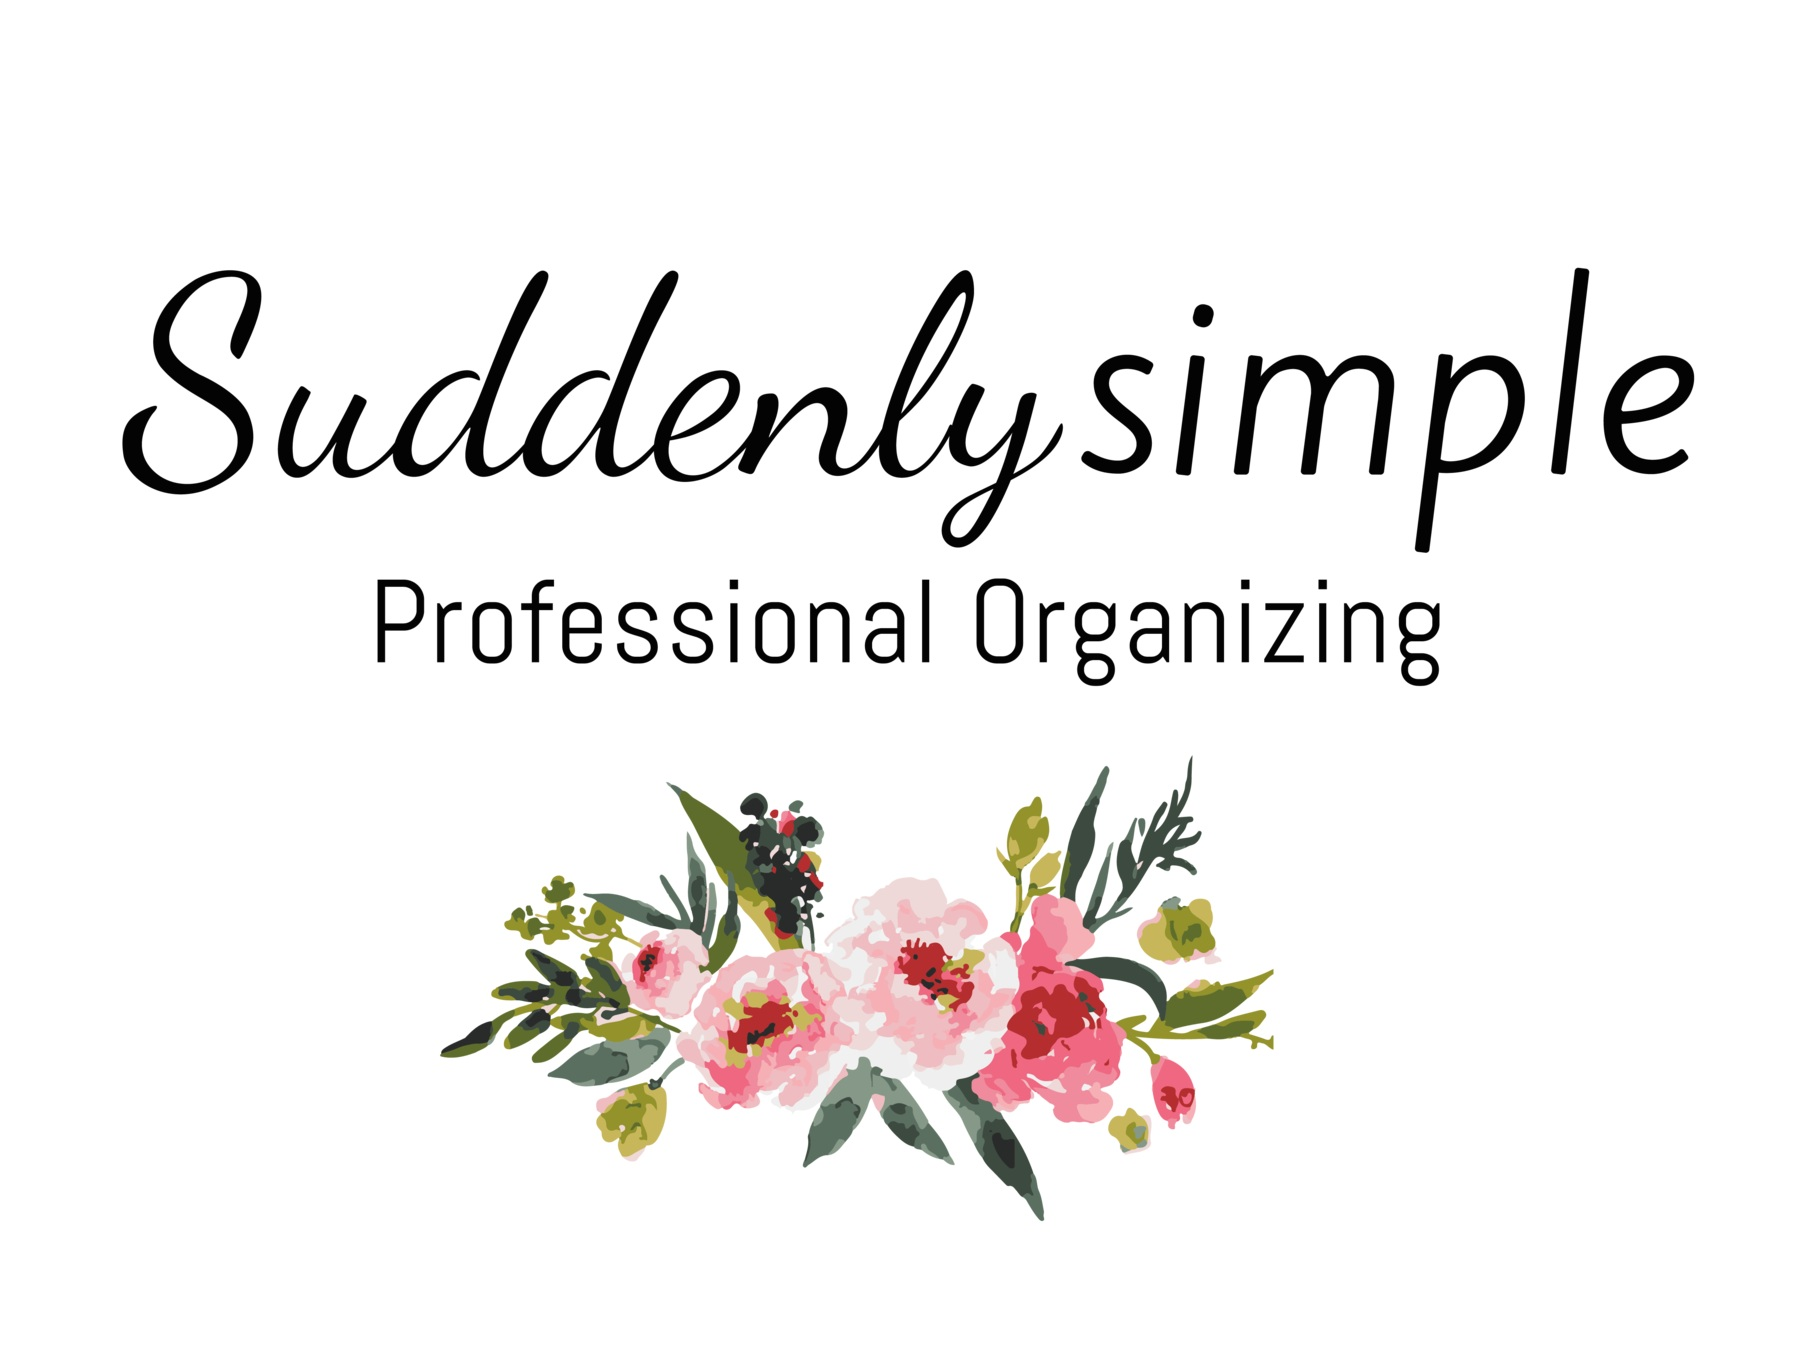 Suddenly Simple Professional Organizing Logo with Flower